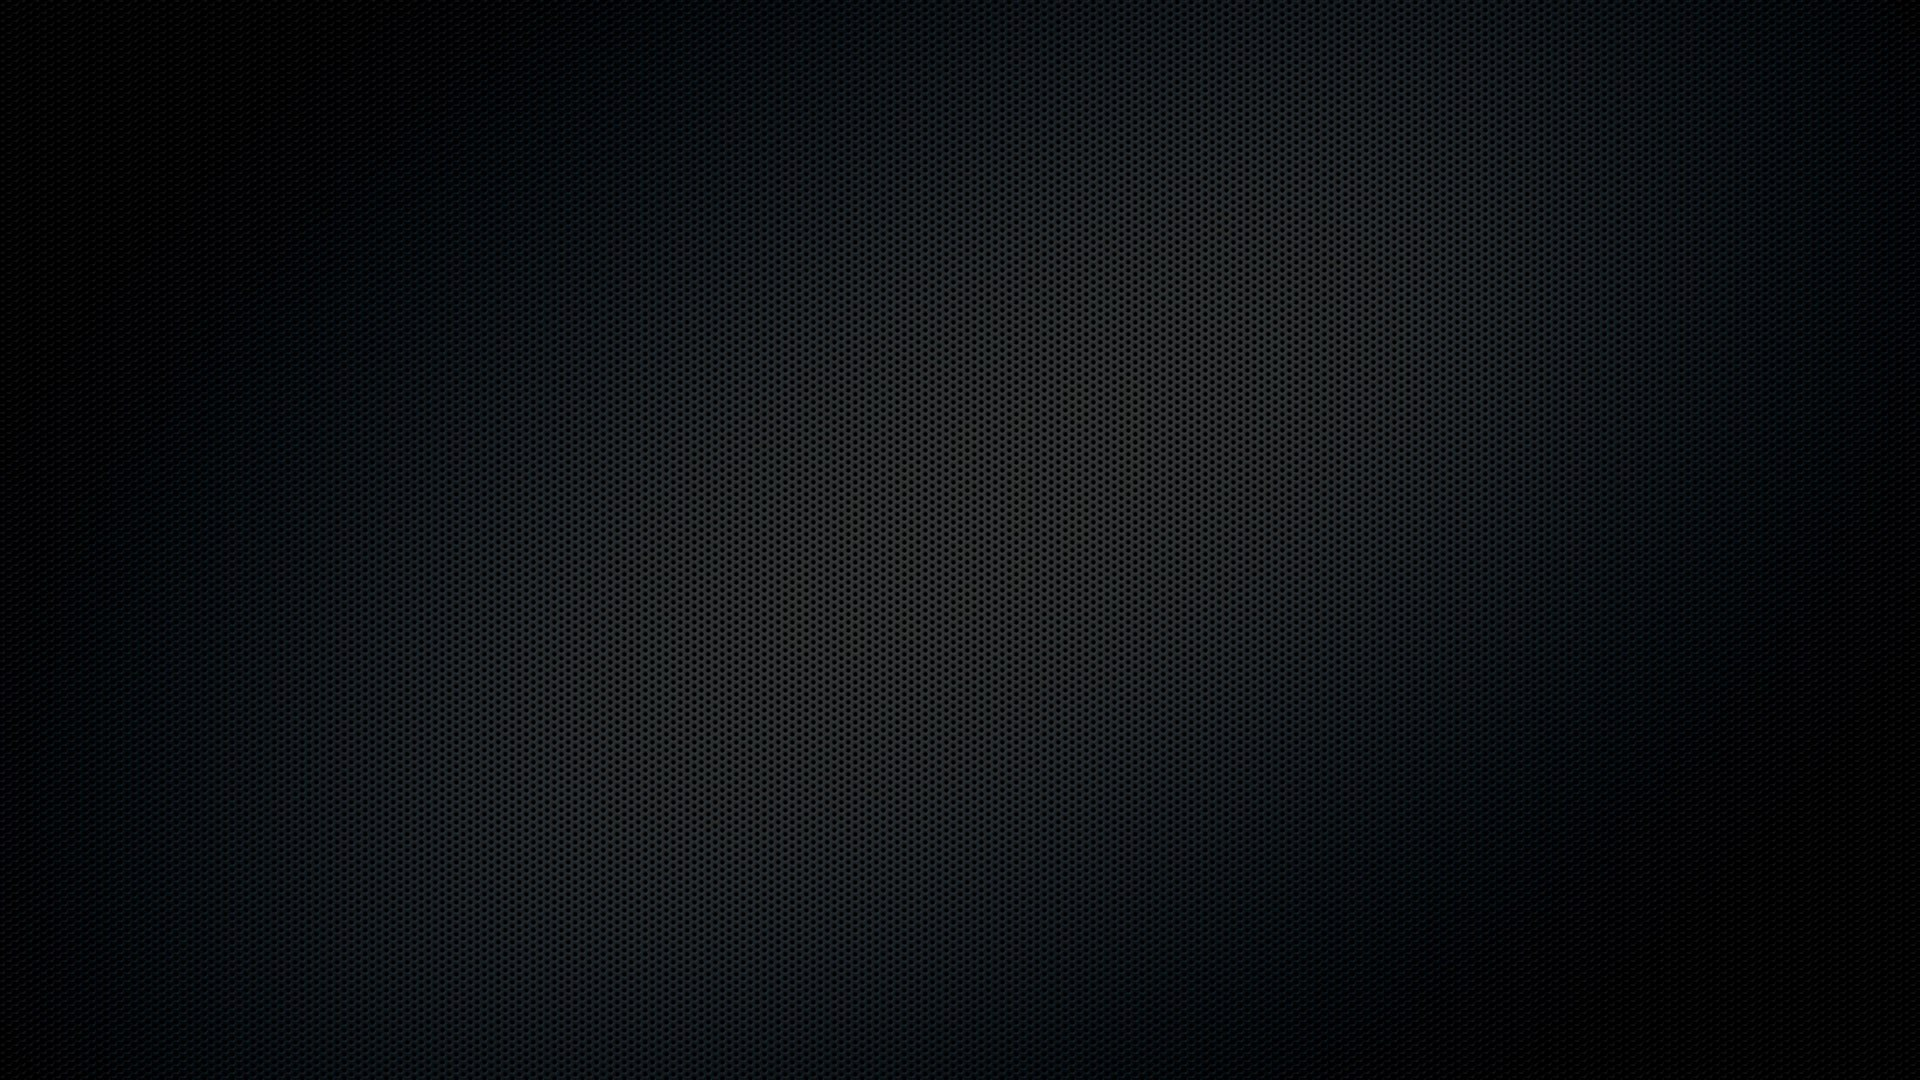 Black Hd Wallpaper 1920X1080 10 Free Wallpaper ...